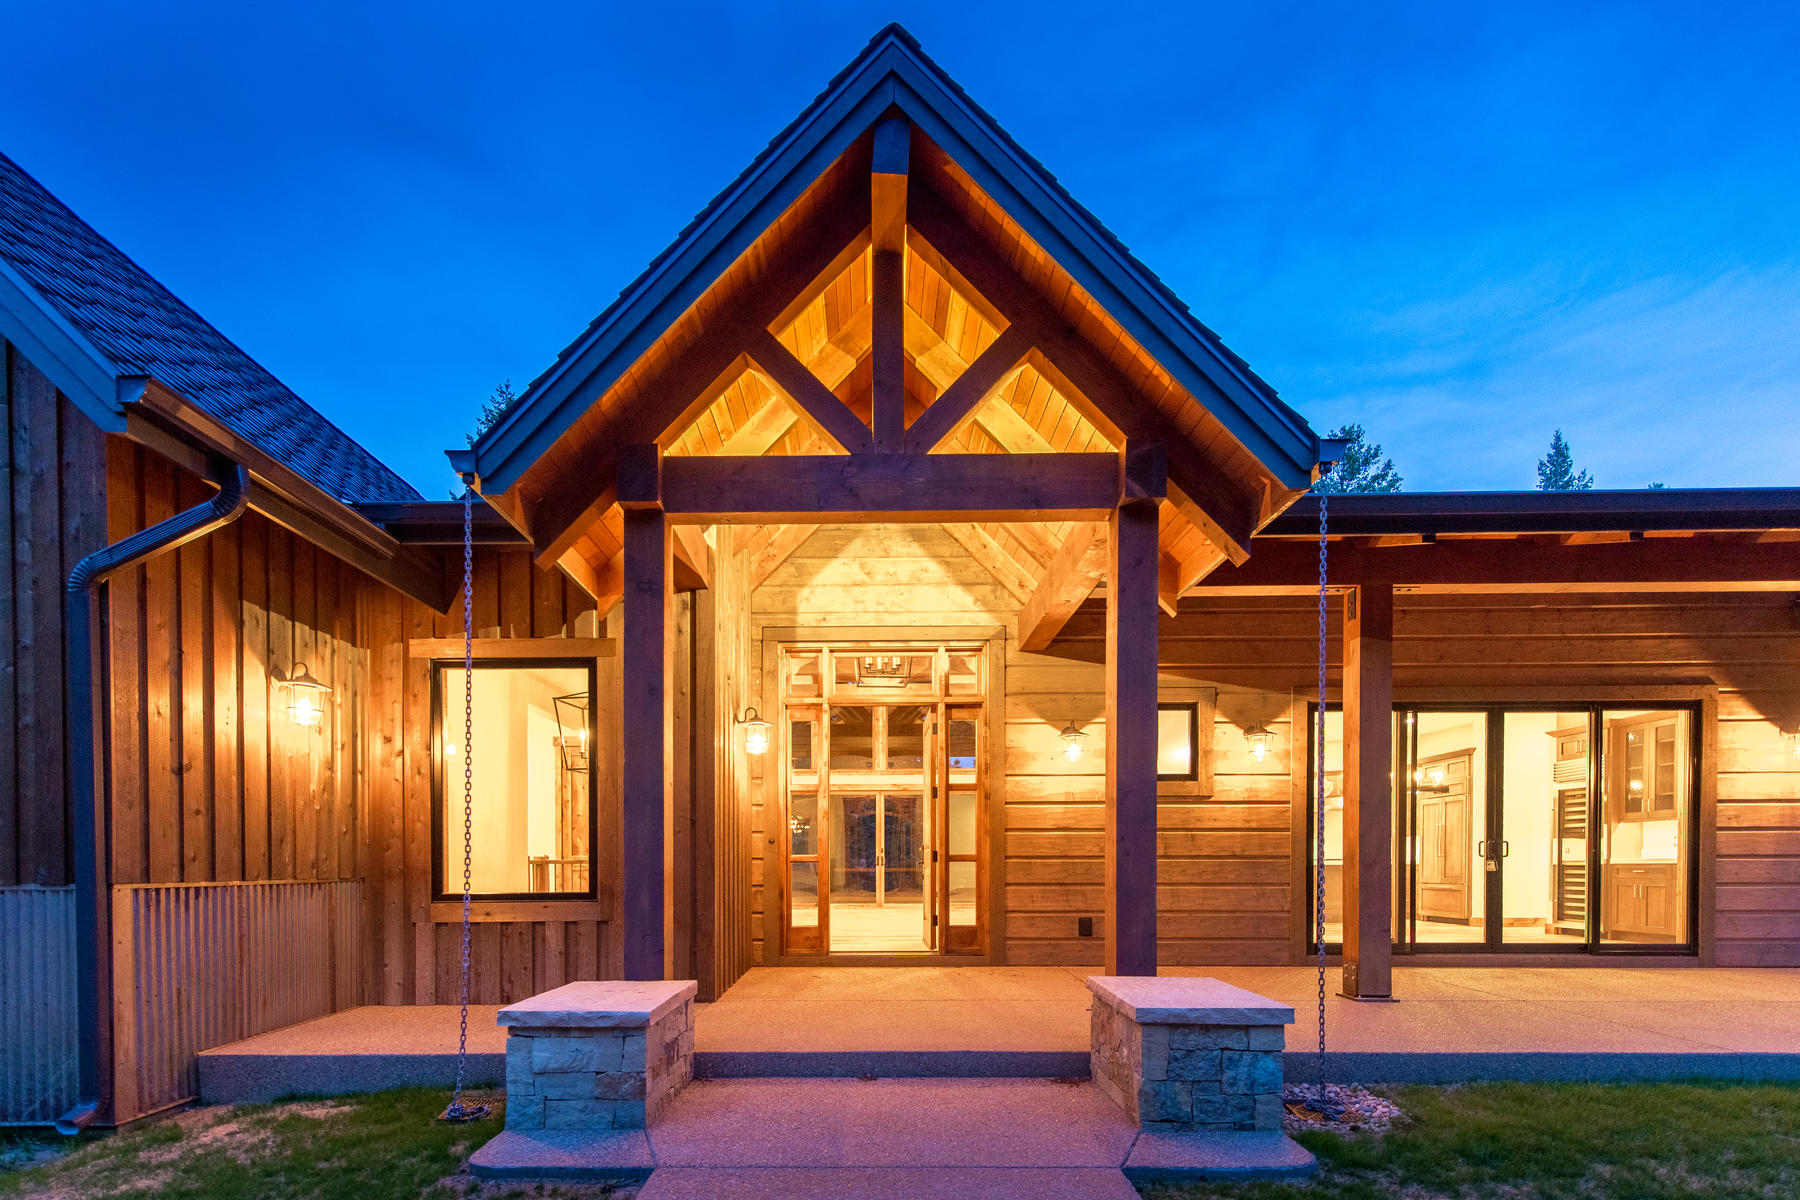 Single Family Homes for Active at Rare New Construction Affords the Ultimate in Colorado Living 6383 Little Cub Creek Road Evergreen, Colorado 80439 United States